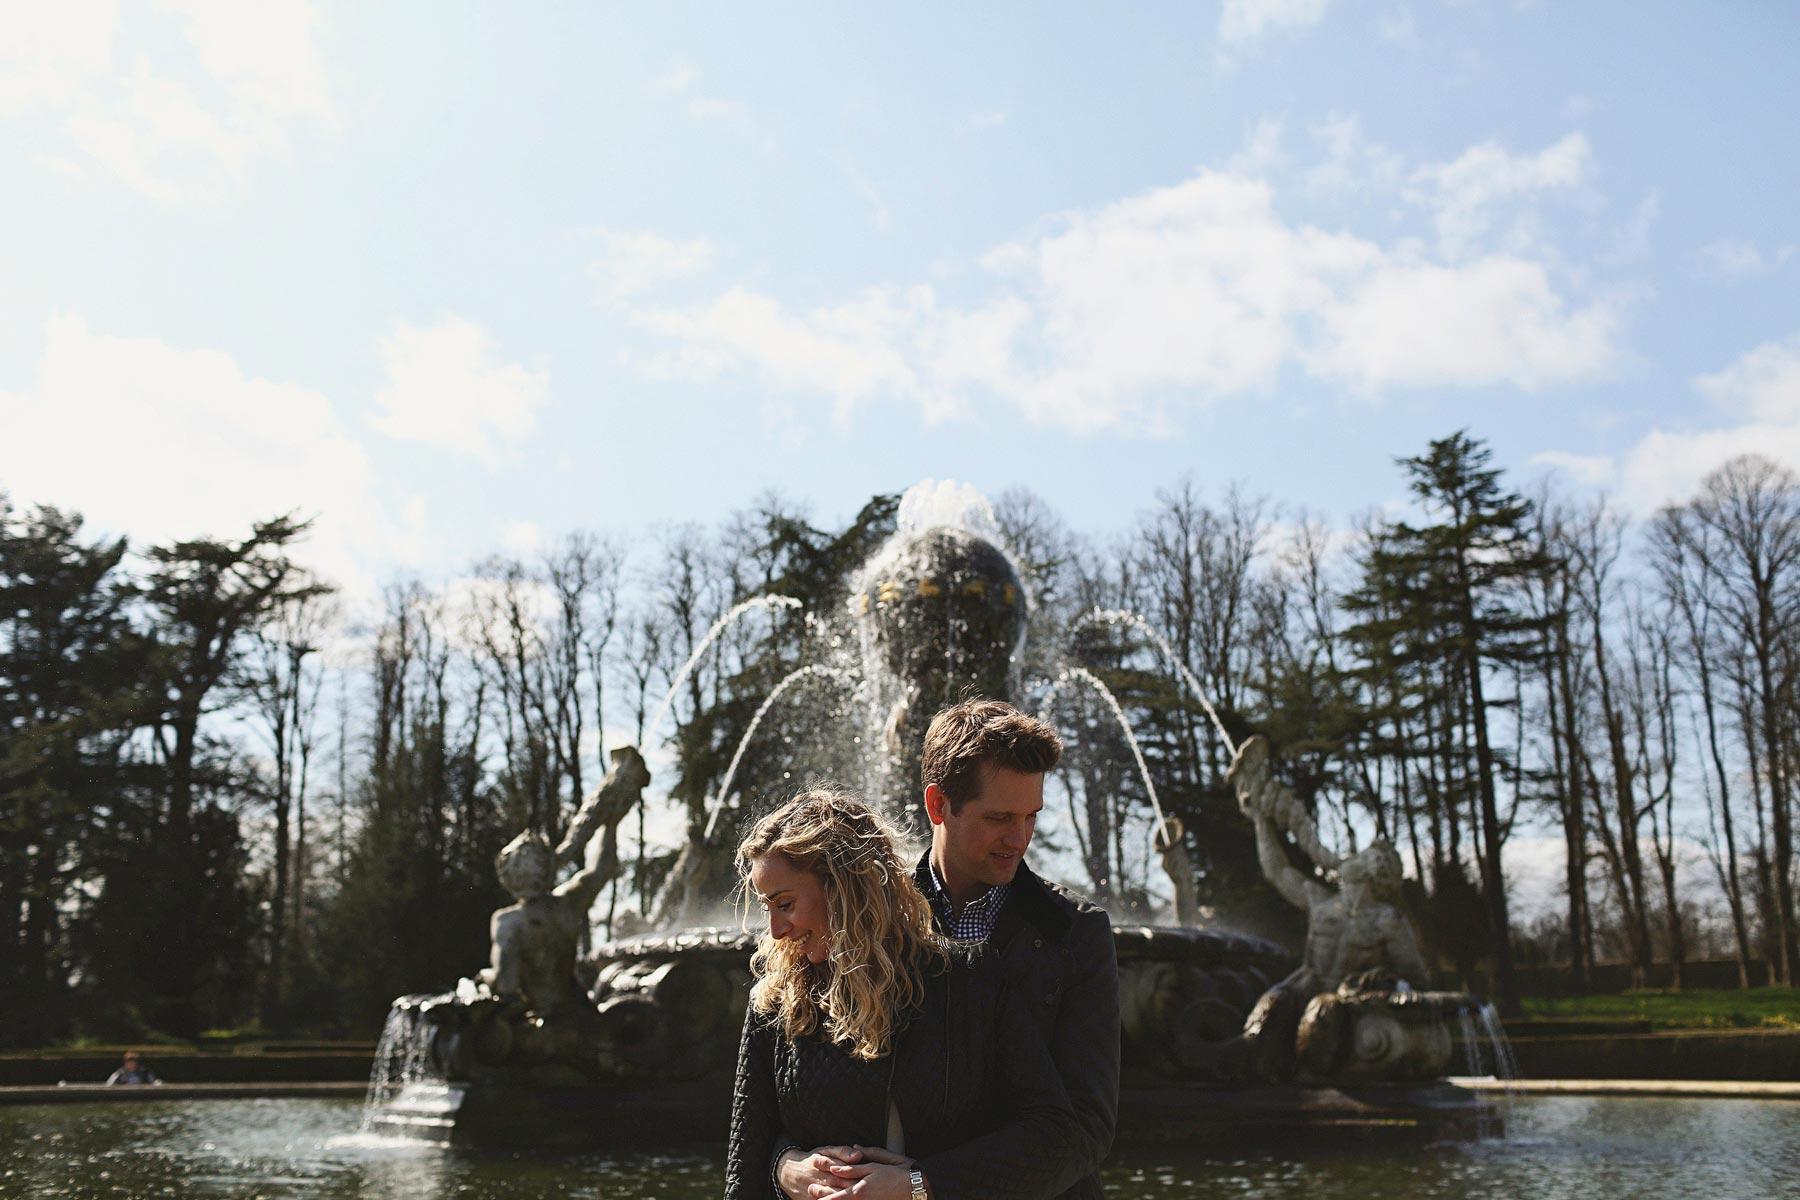 Castle-Howard-Engagement-Shoot-17